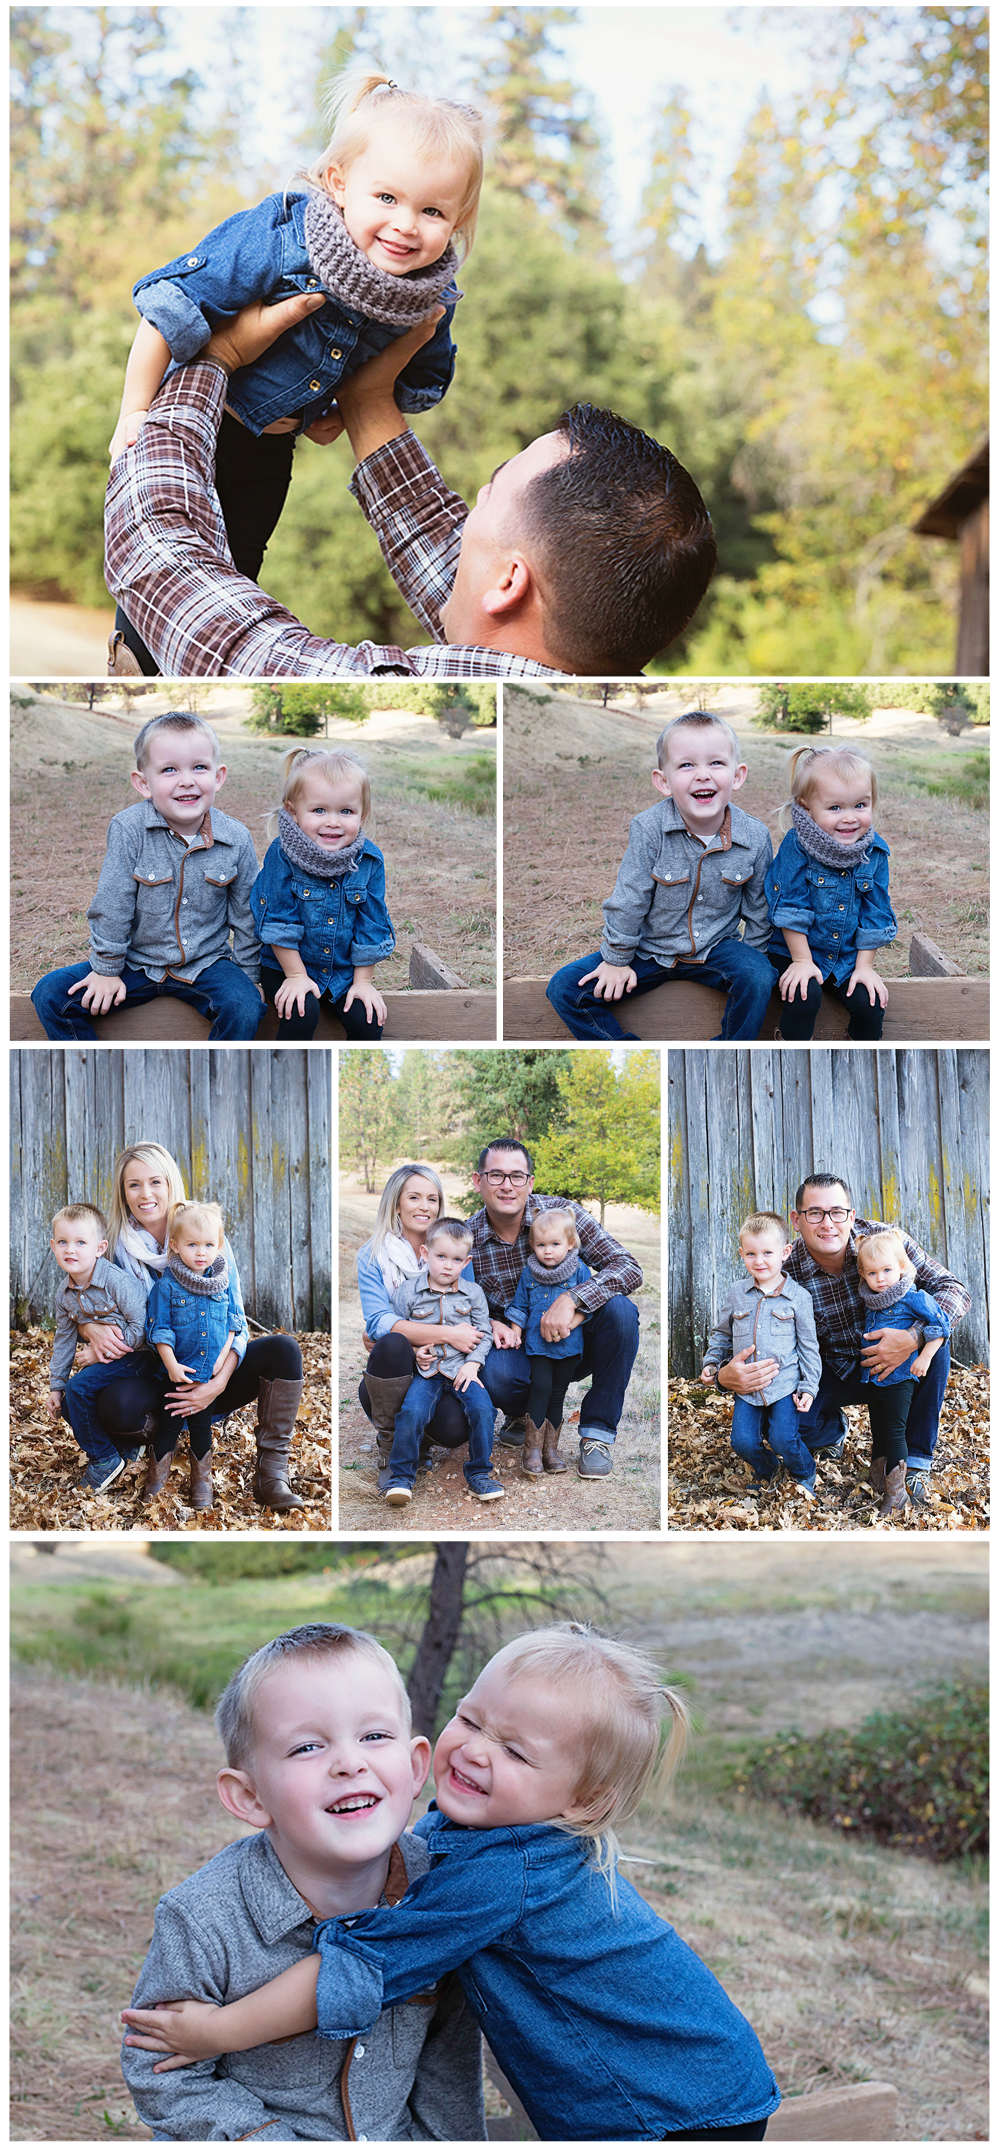 A fun photo session with this family of four!